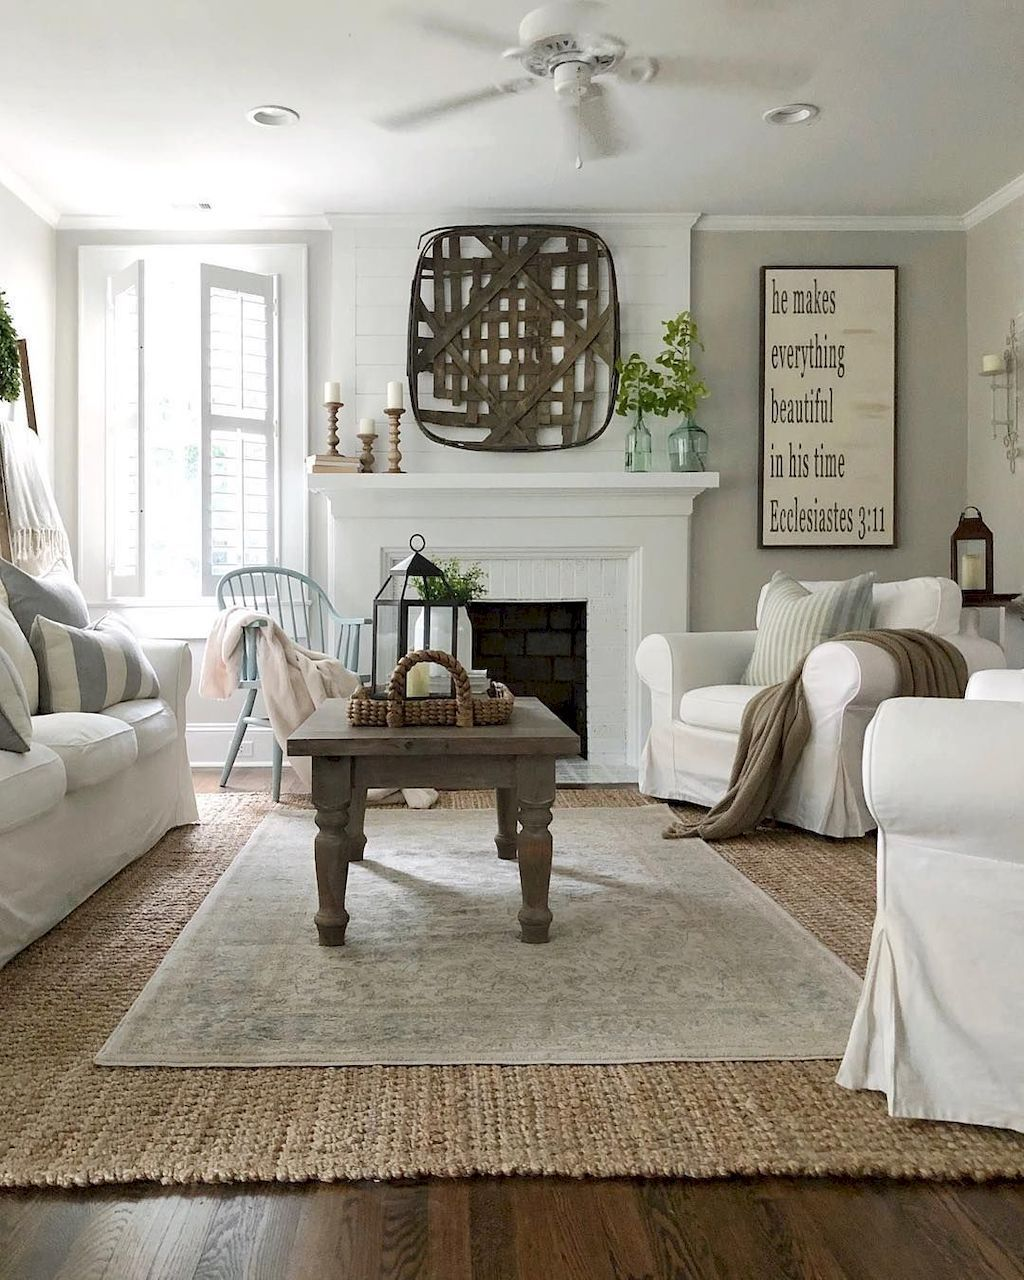 Comfy Farmhouse Living Room Designs To Steal (22 images